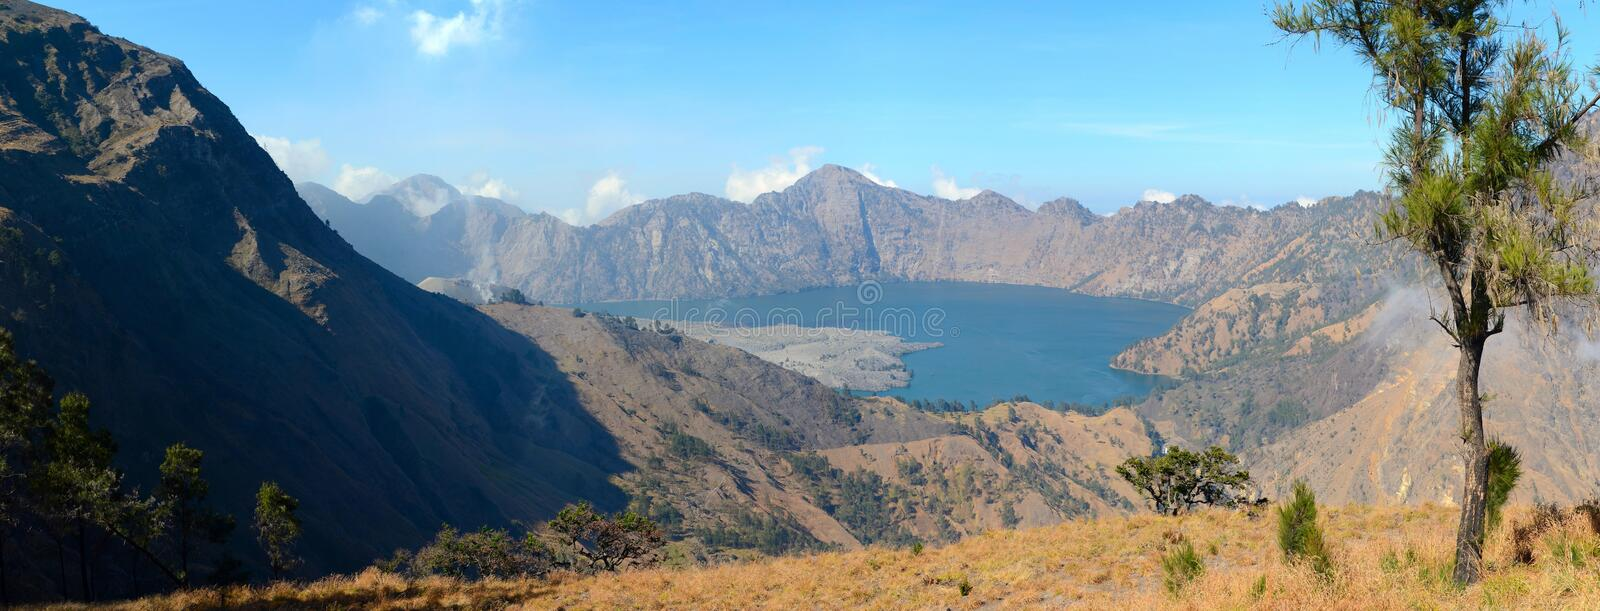 Panorama of the lake in the crater of the volcano Rinjani, a small eruption, Lombok Island, Indonesia stock image